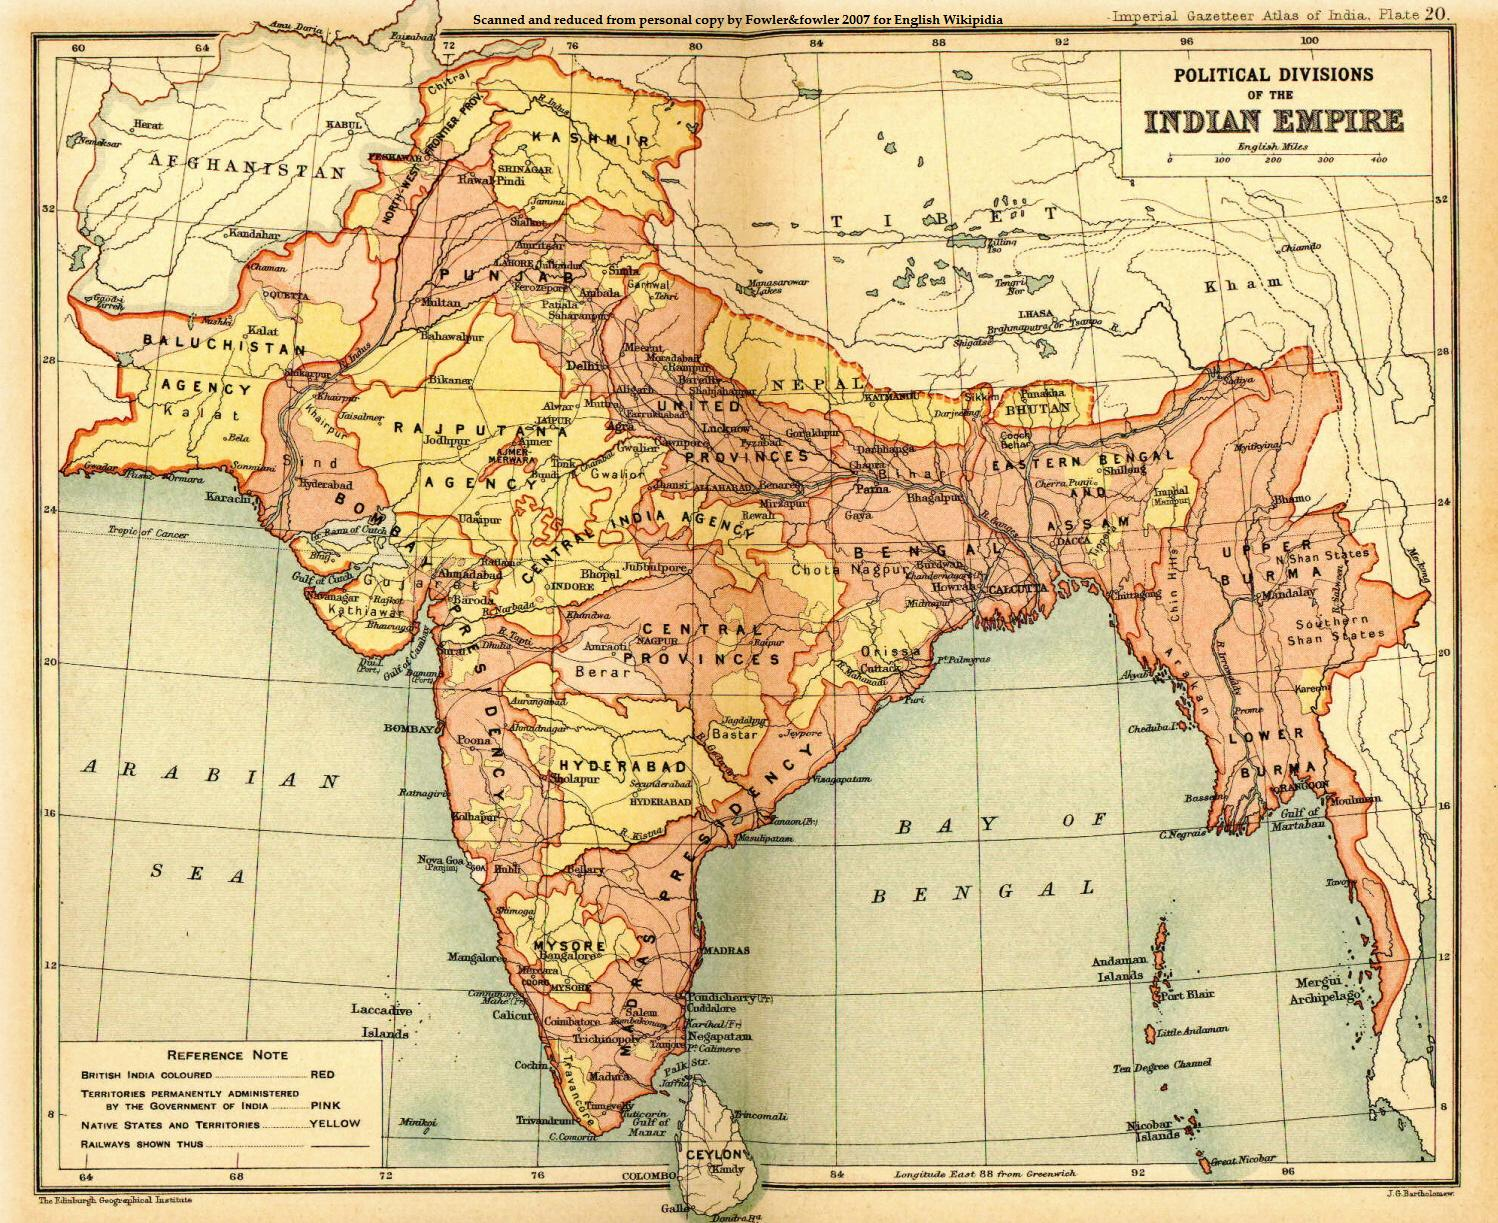 What Were the Social and Political Impacts of the Partition of India and Pakistan?